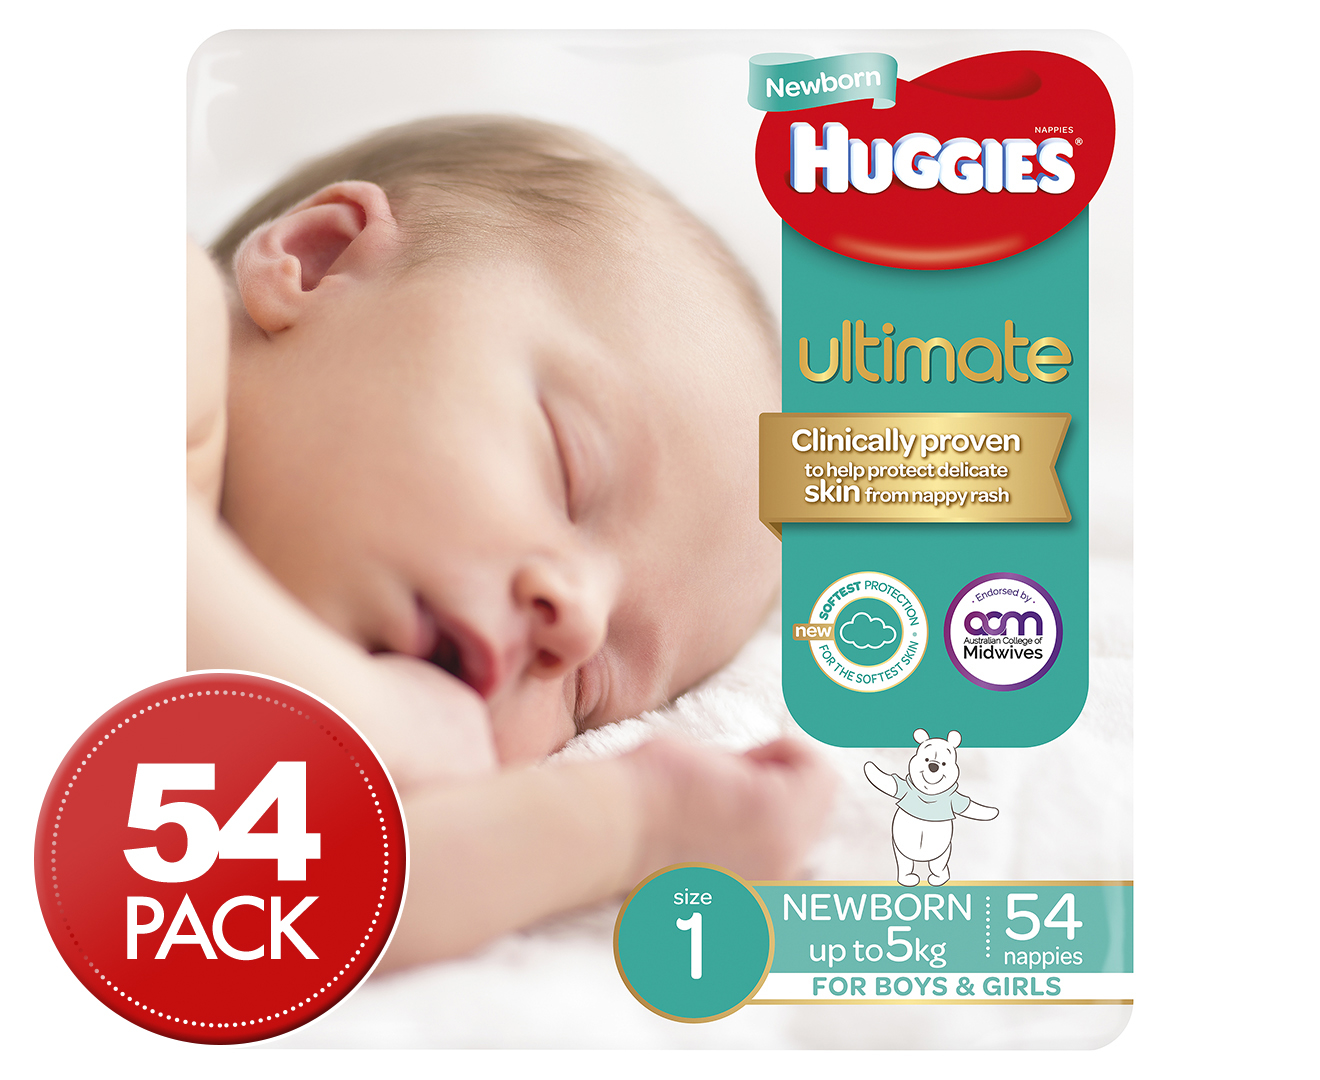 Where to buy nappies online | Catch | Beanstalk Mums